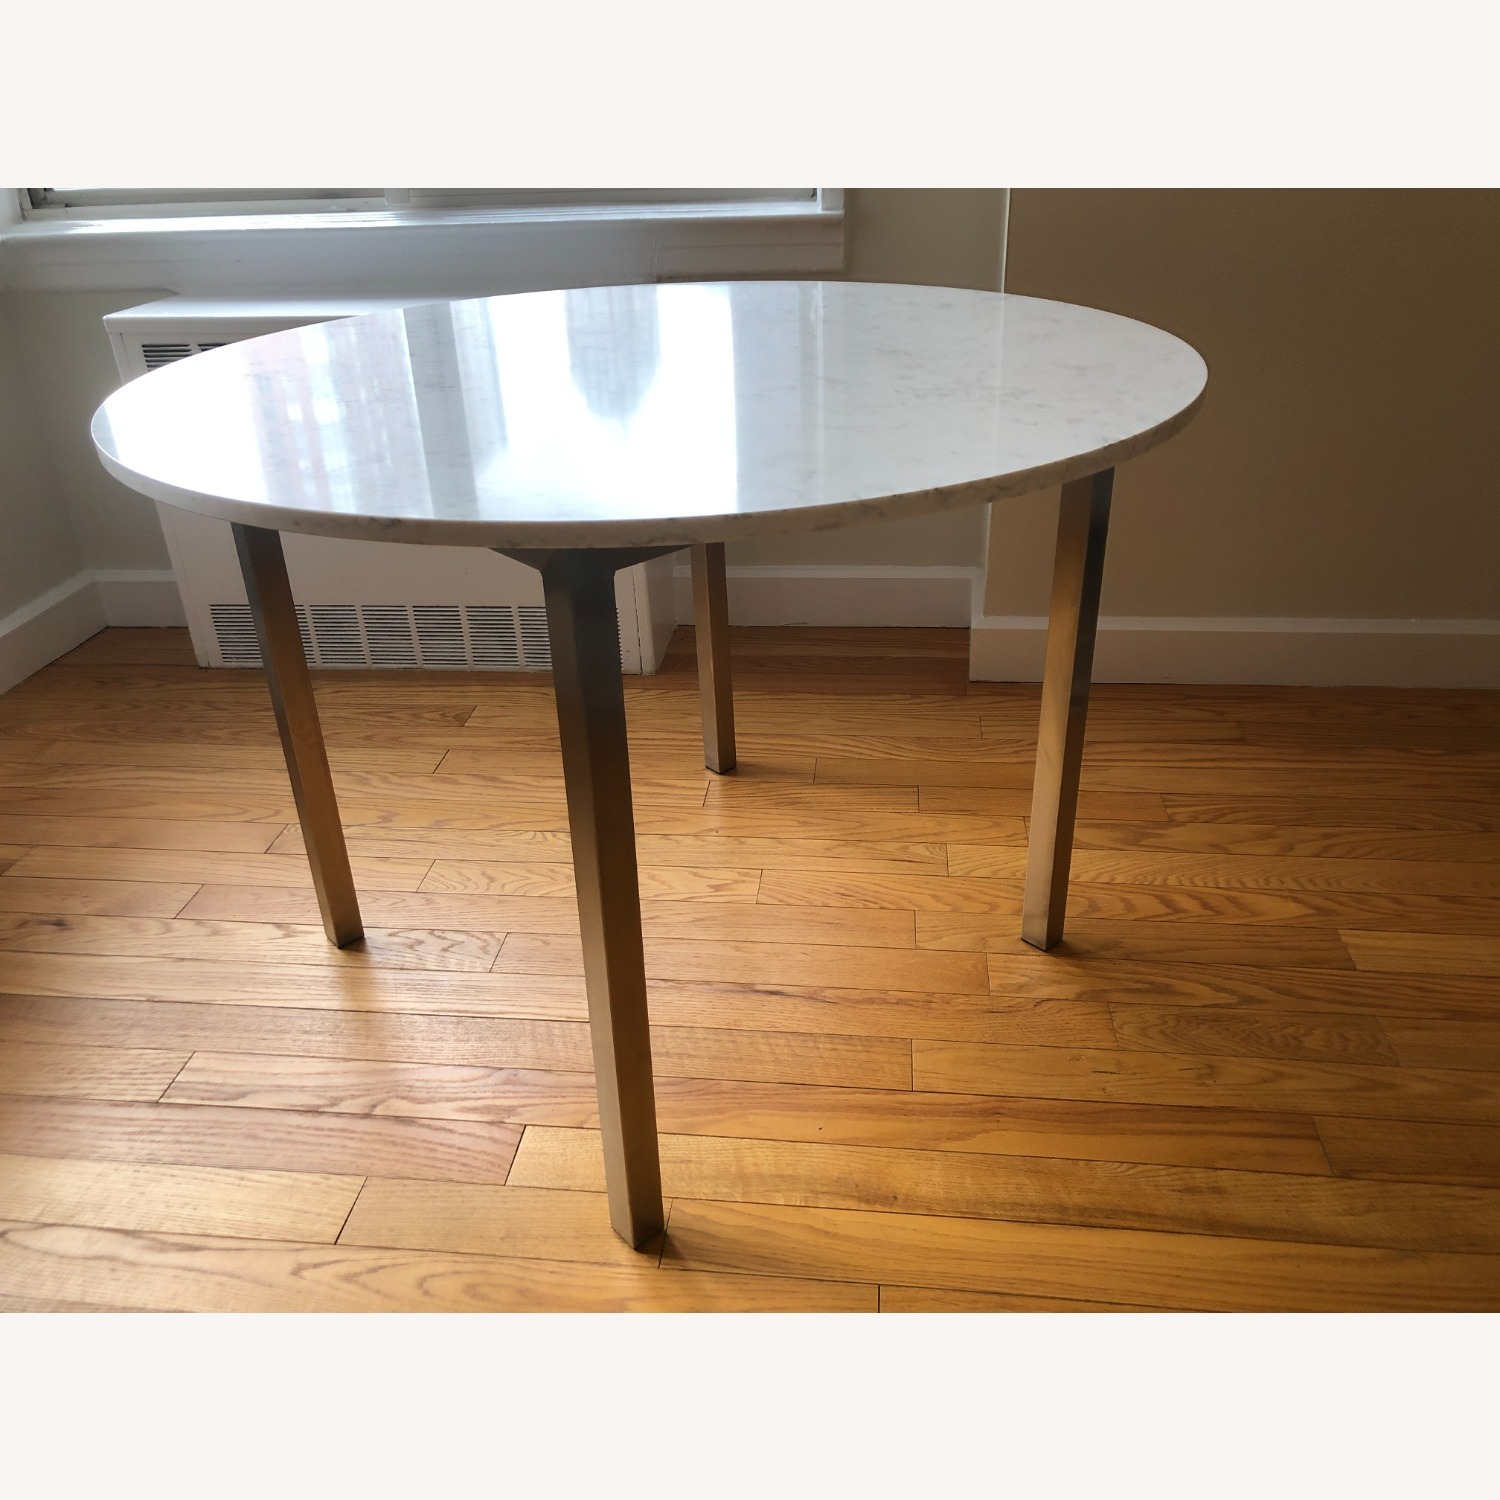 Room & Board Round Dining Table - image-0